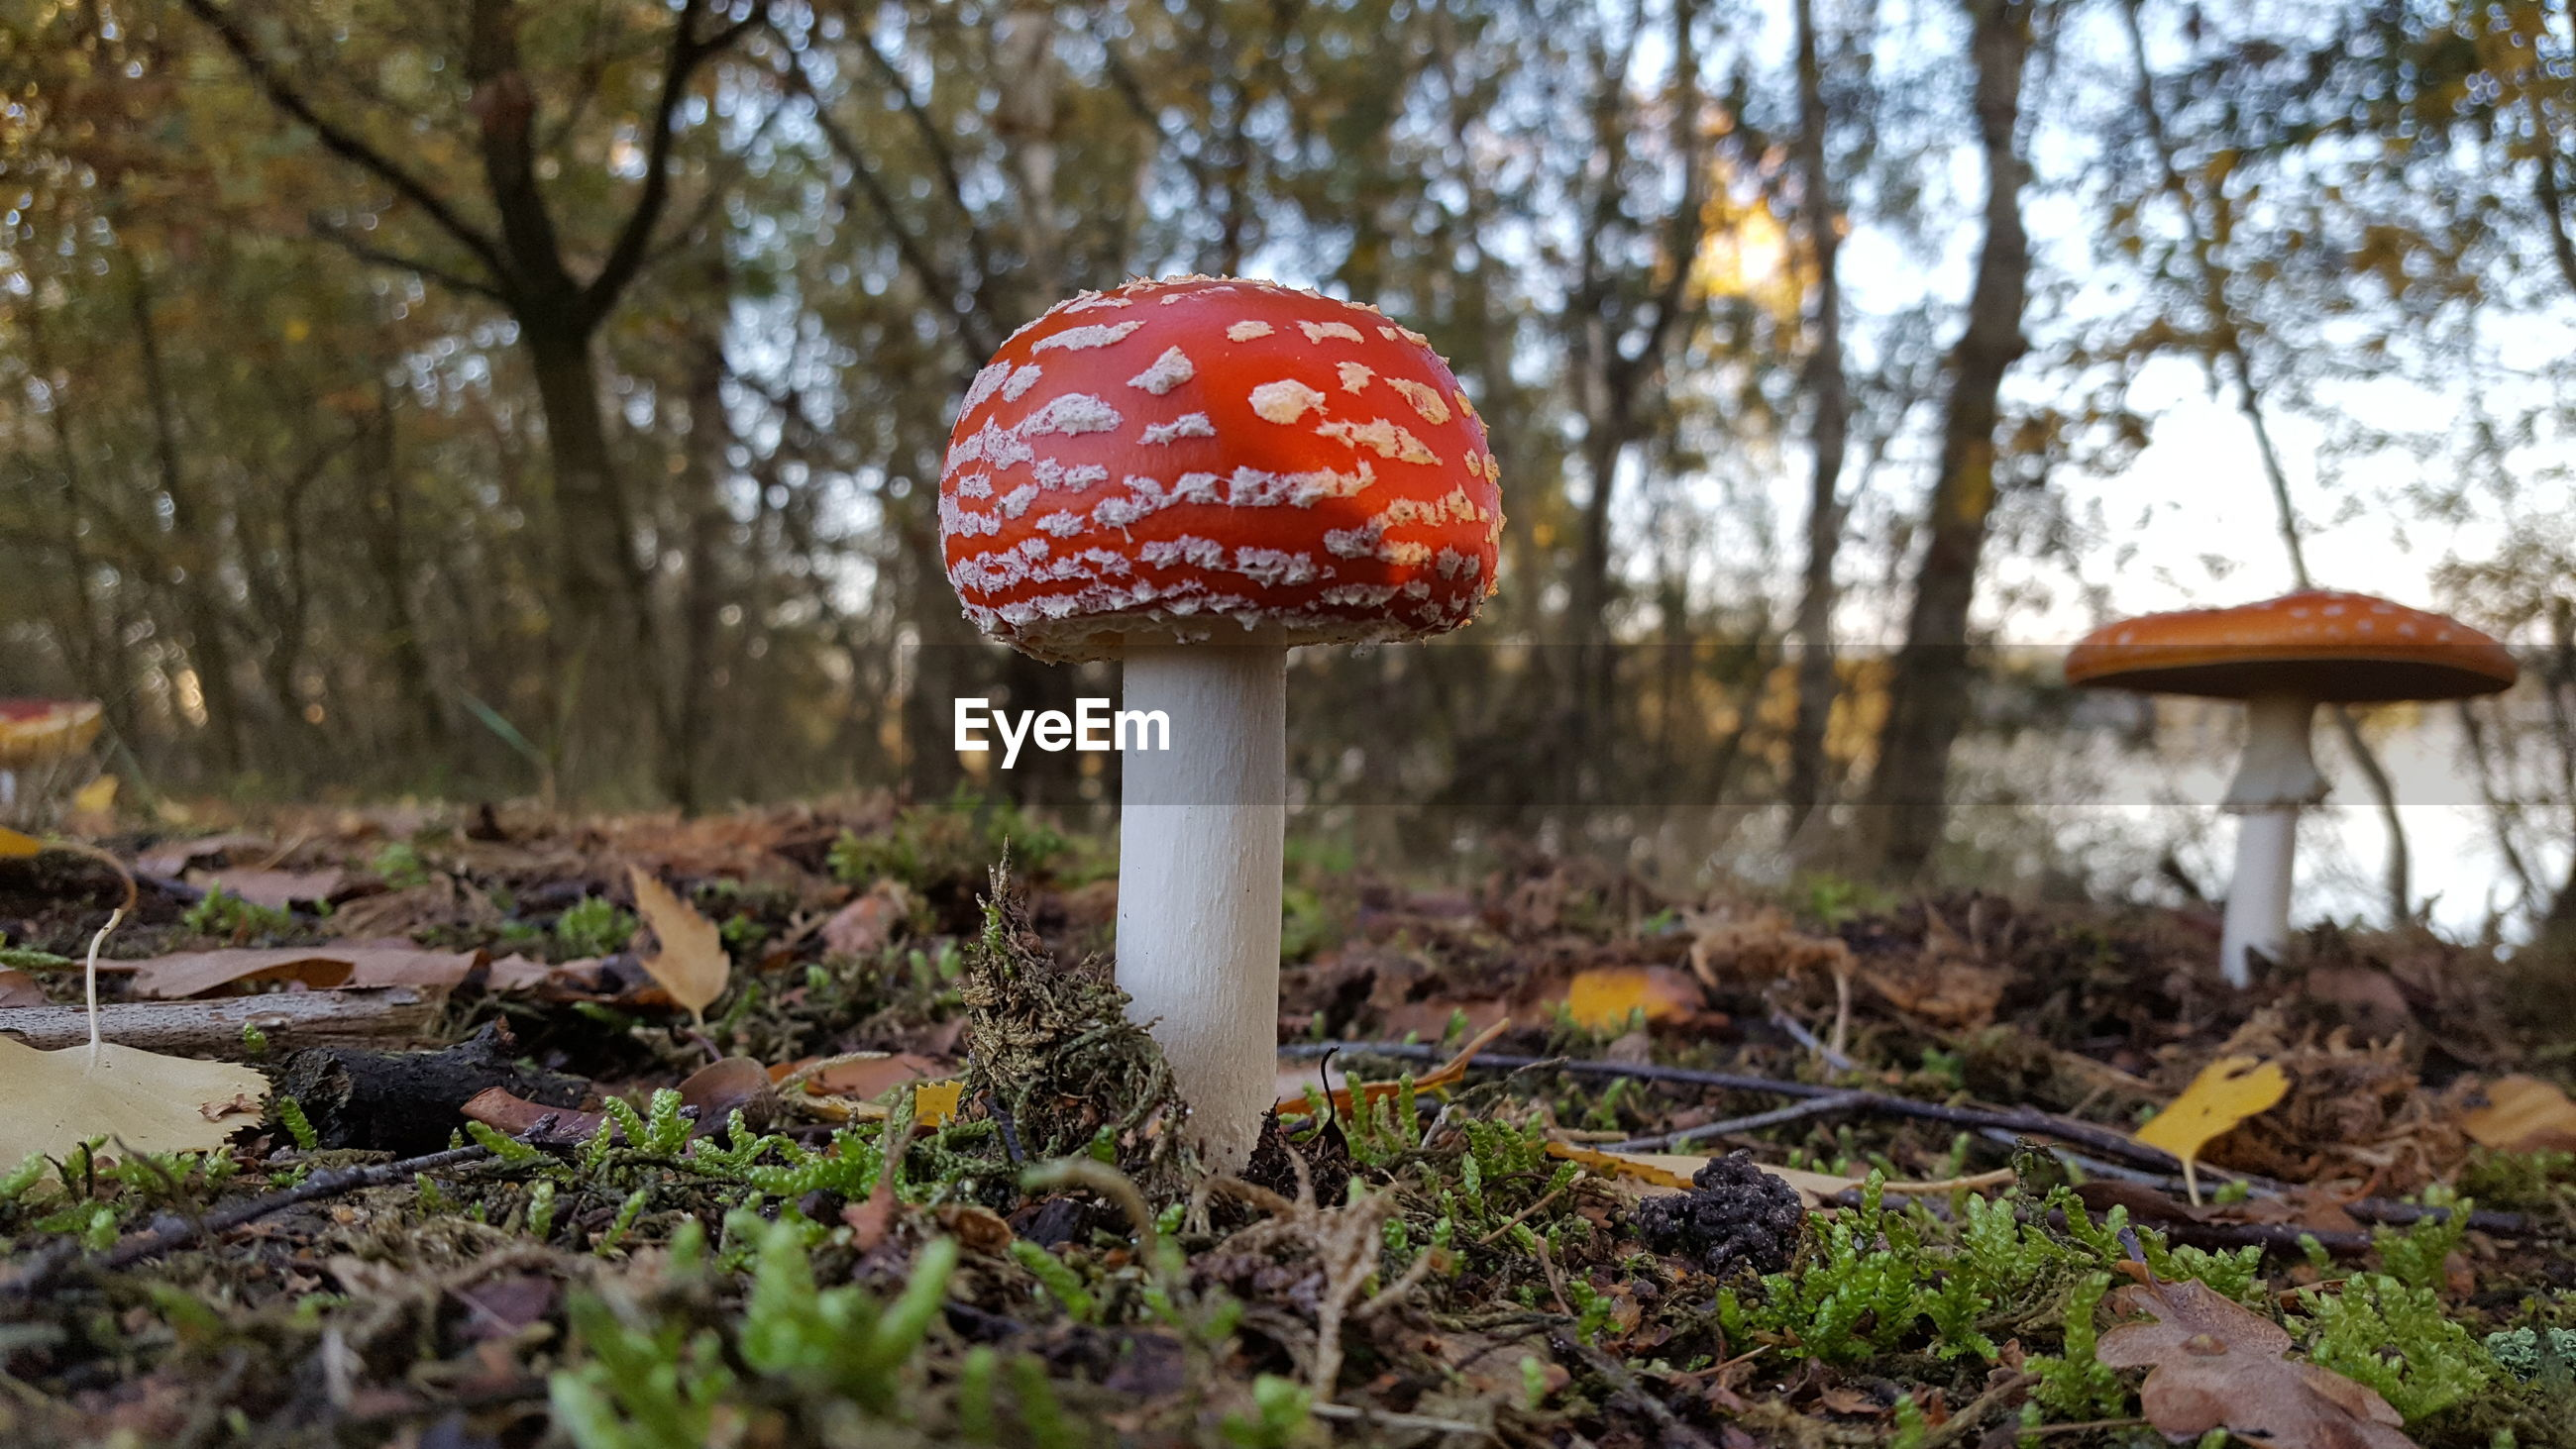 CLOSE-UP OF MUSHROOM ON FIELD BY TREES